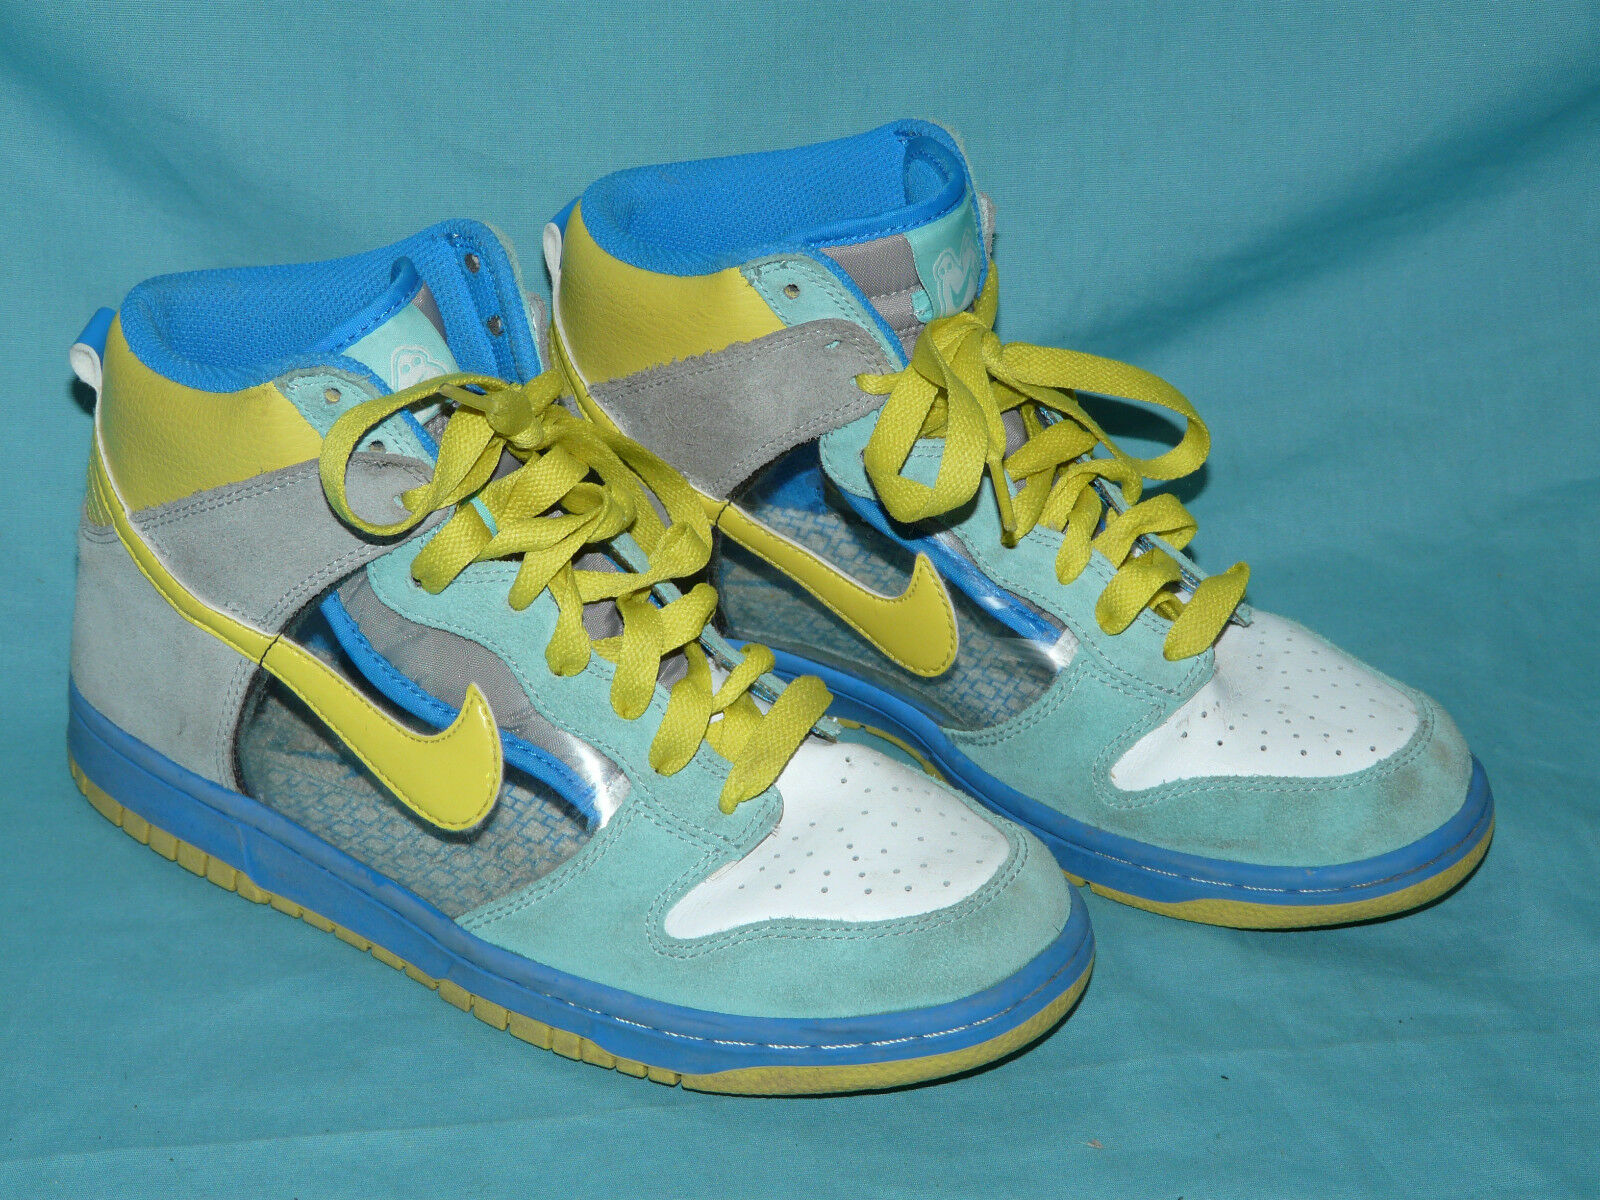 nike dunk salut 6.0 claireHommes claireHommes claireHommes t 342257-131 groupe sb basket féminin chaussures taille 9, 4 0,5 573c46